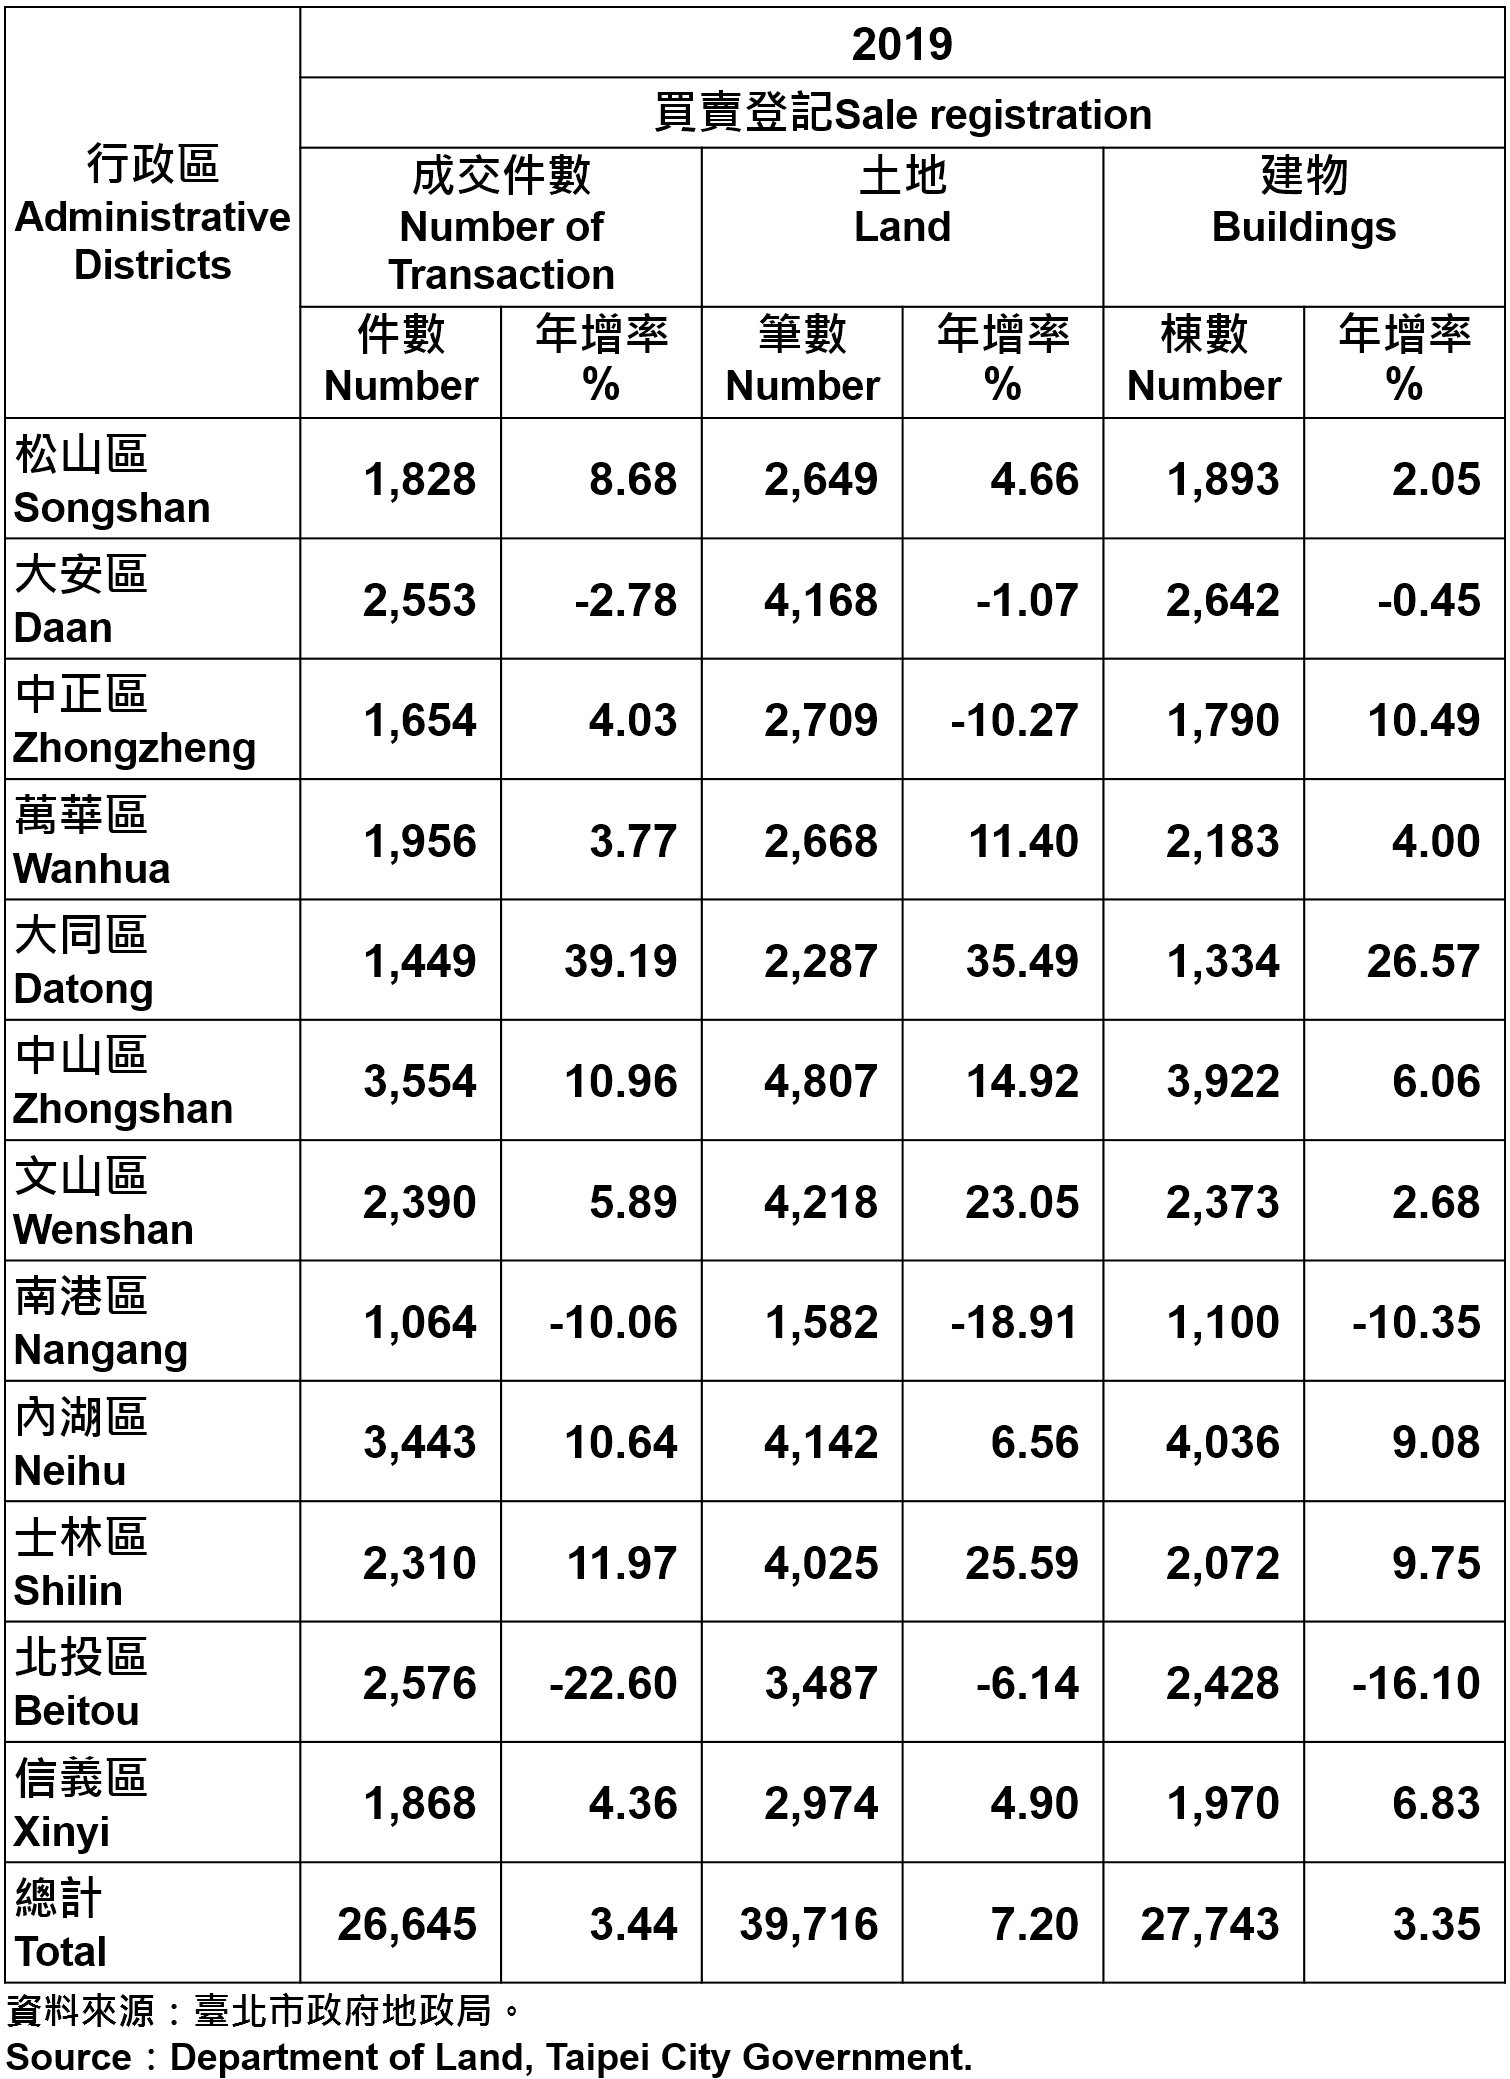 不動產買賣登記統計—依行政區分—2019 Statistics for Trade in Real Estate Registration by Distinct—2019